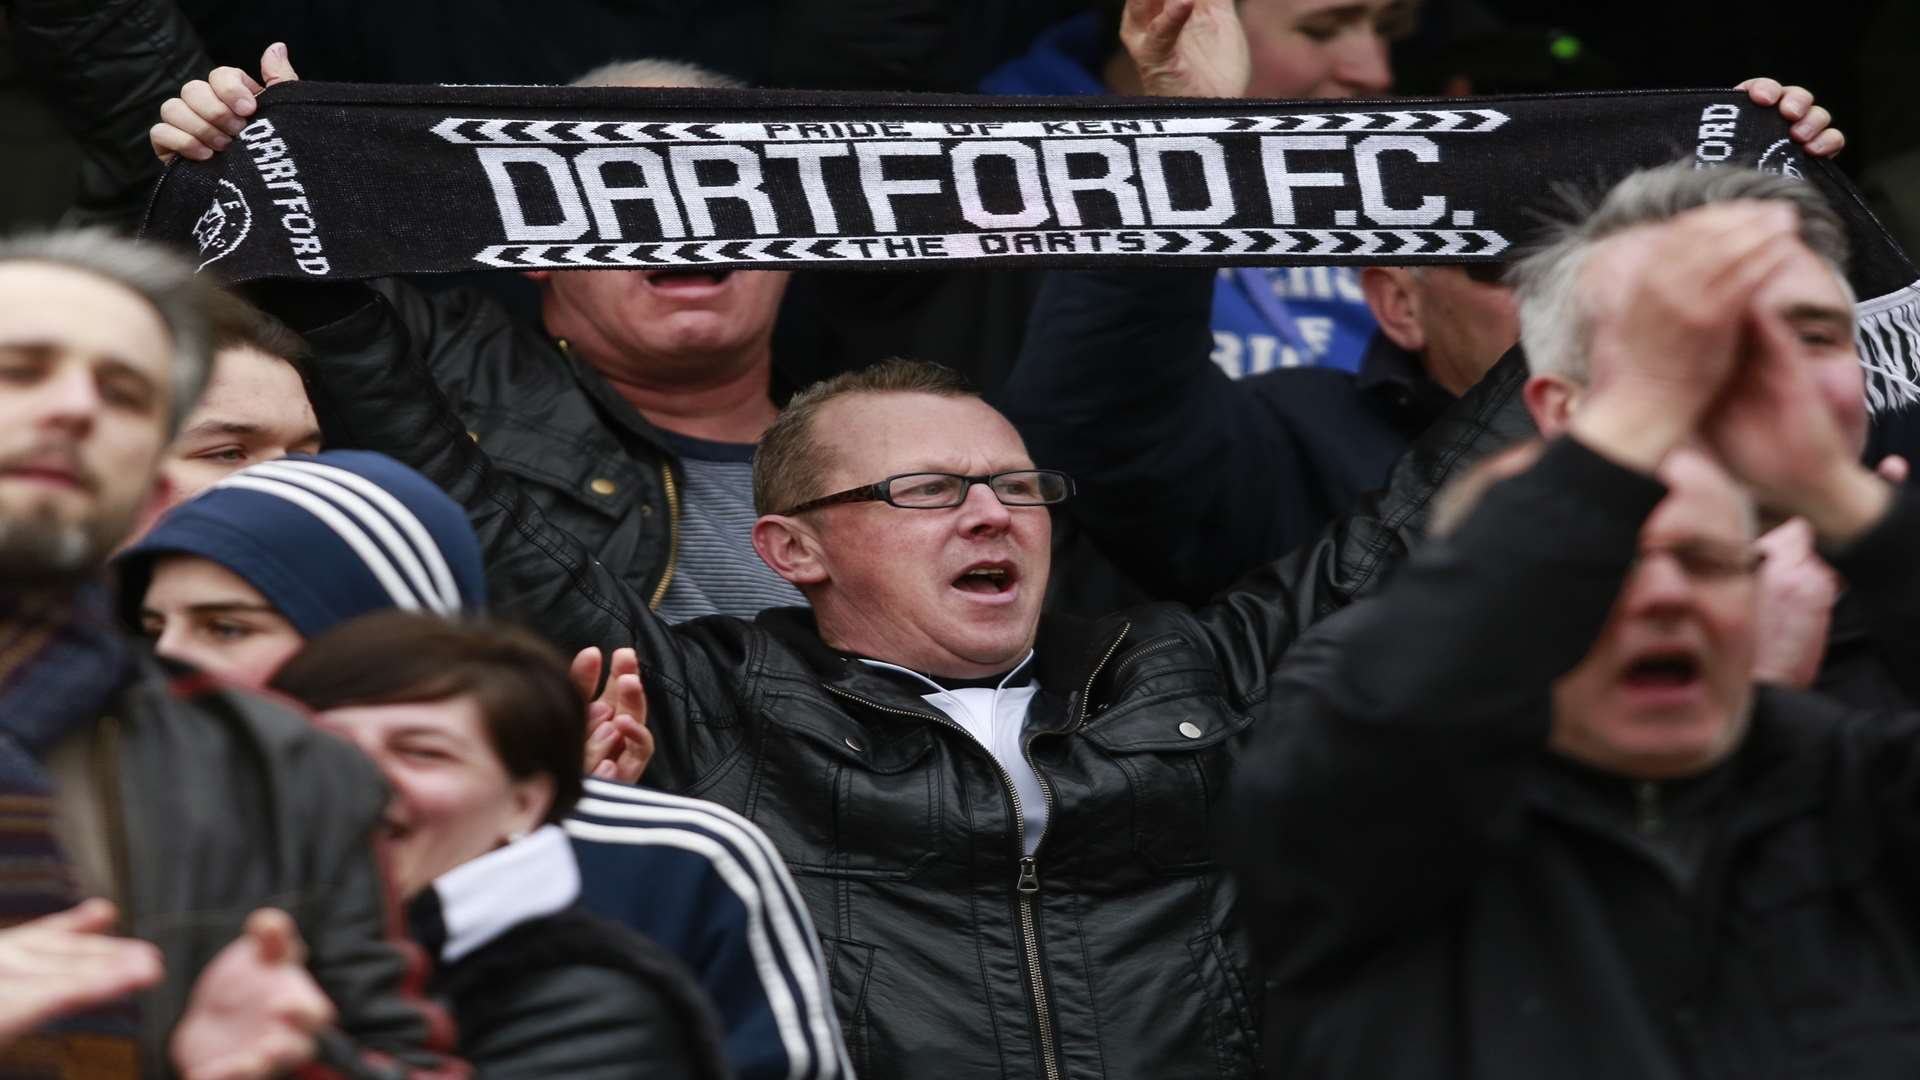 Tony Burman wants the Dartford fans to be loud on Sunday Picture: Martin Apps